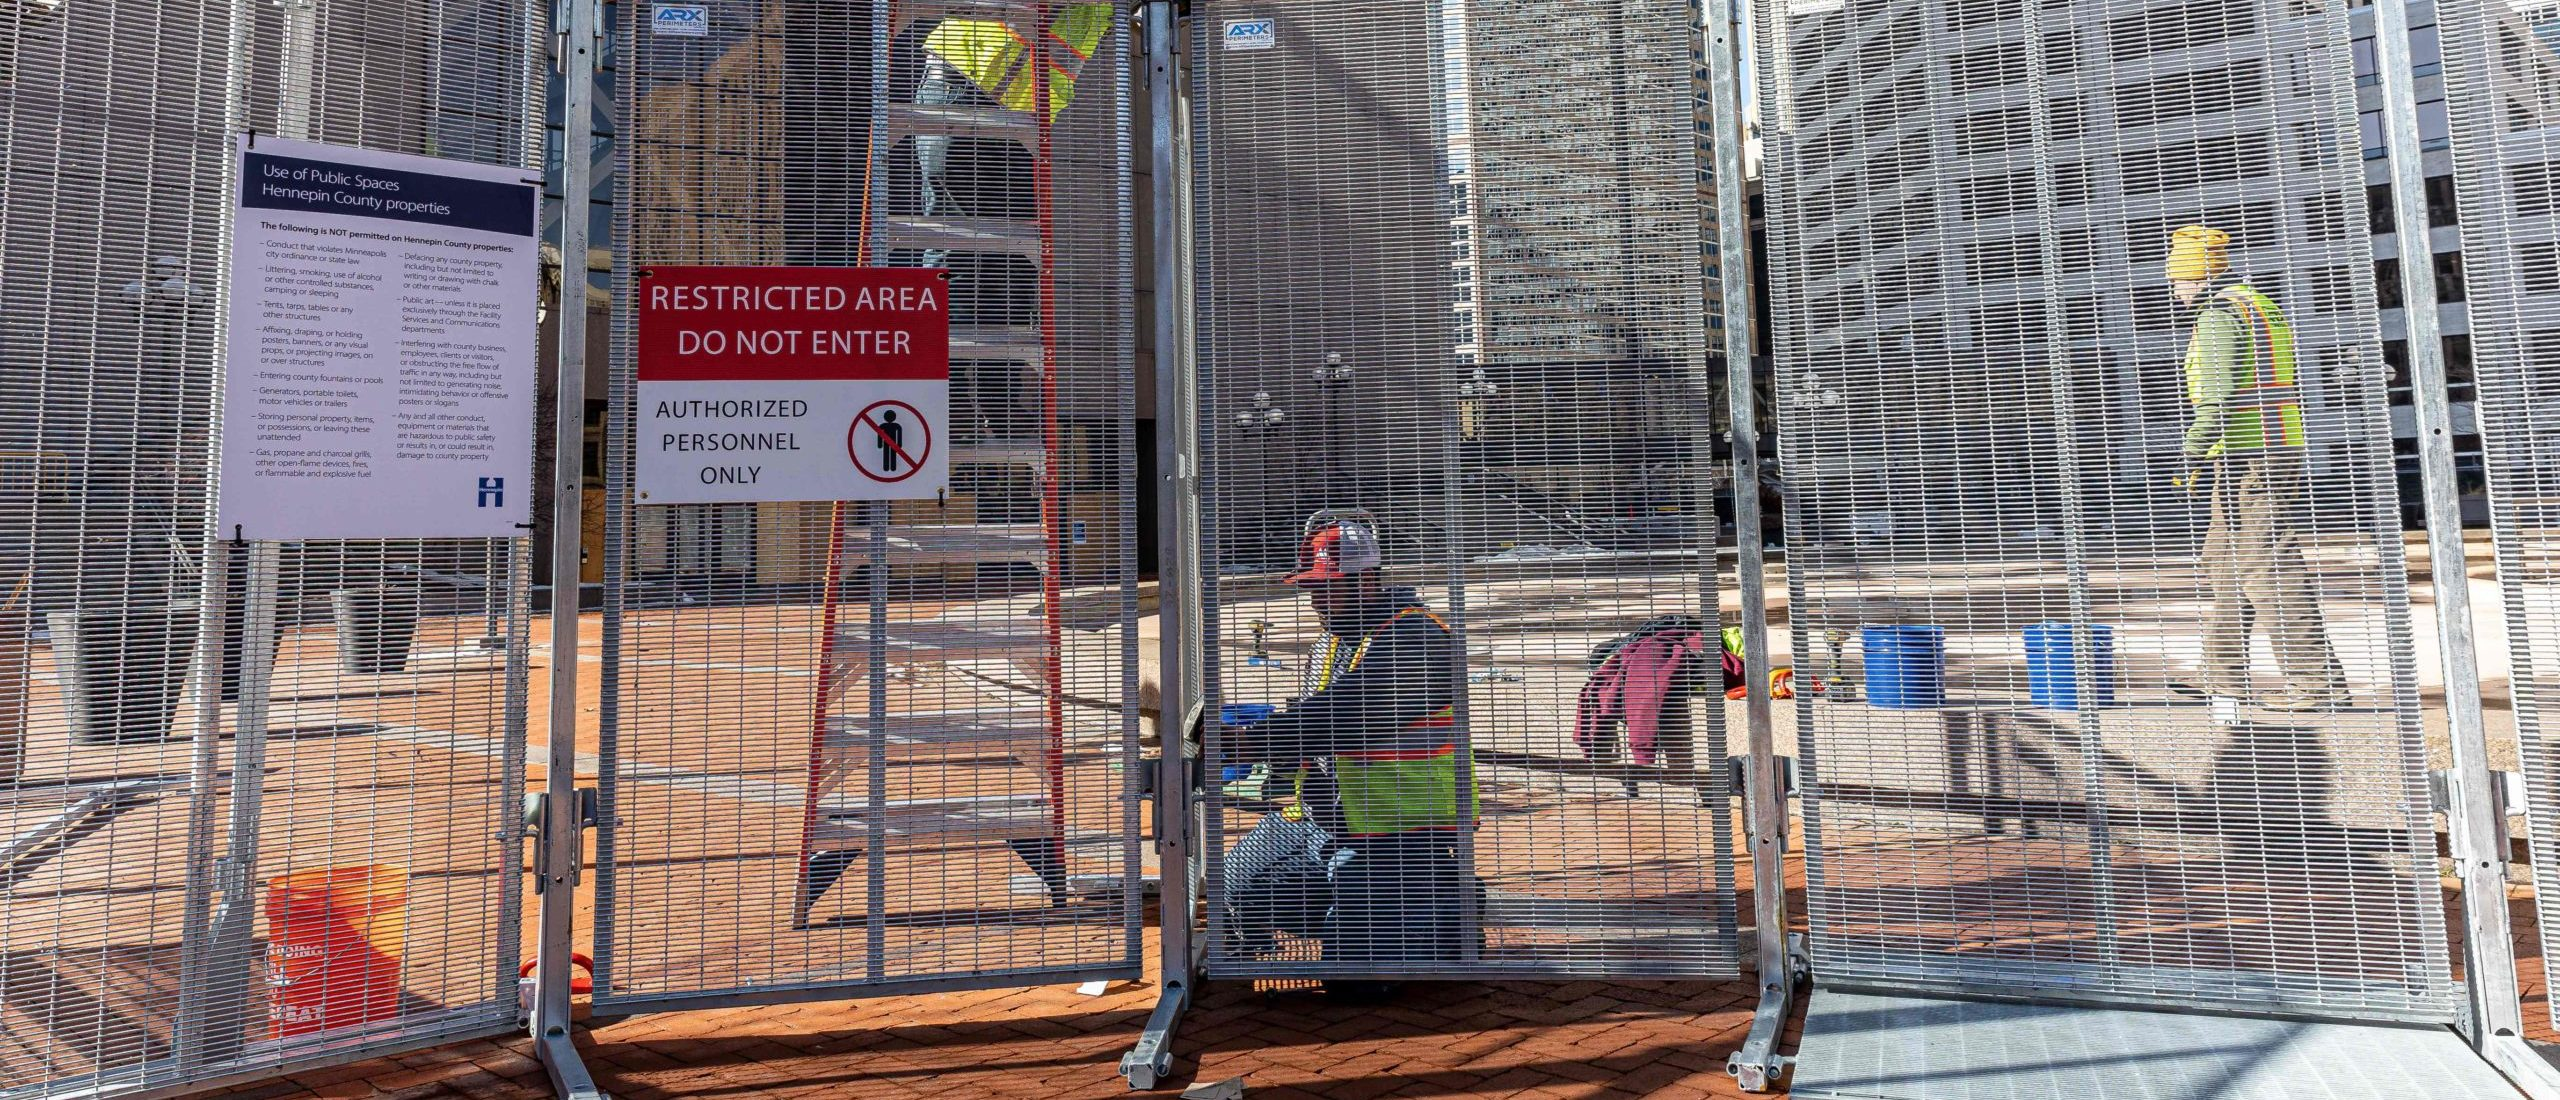 Minneapolis Spends Nearly $650,000 On Fences To Protect City Buildings From Vandalism During Derek Chauvin Trial